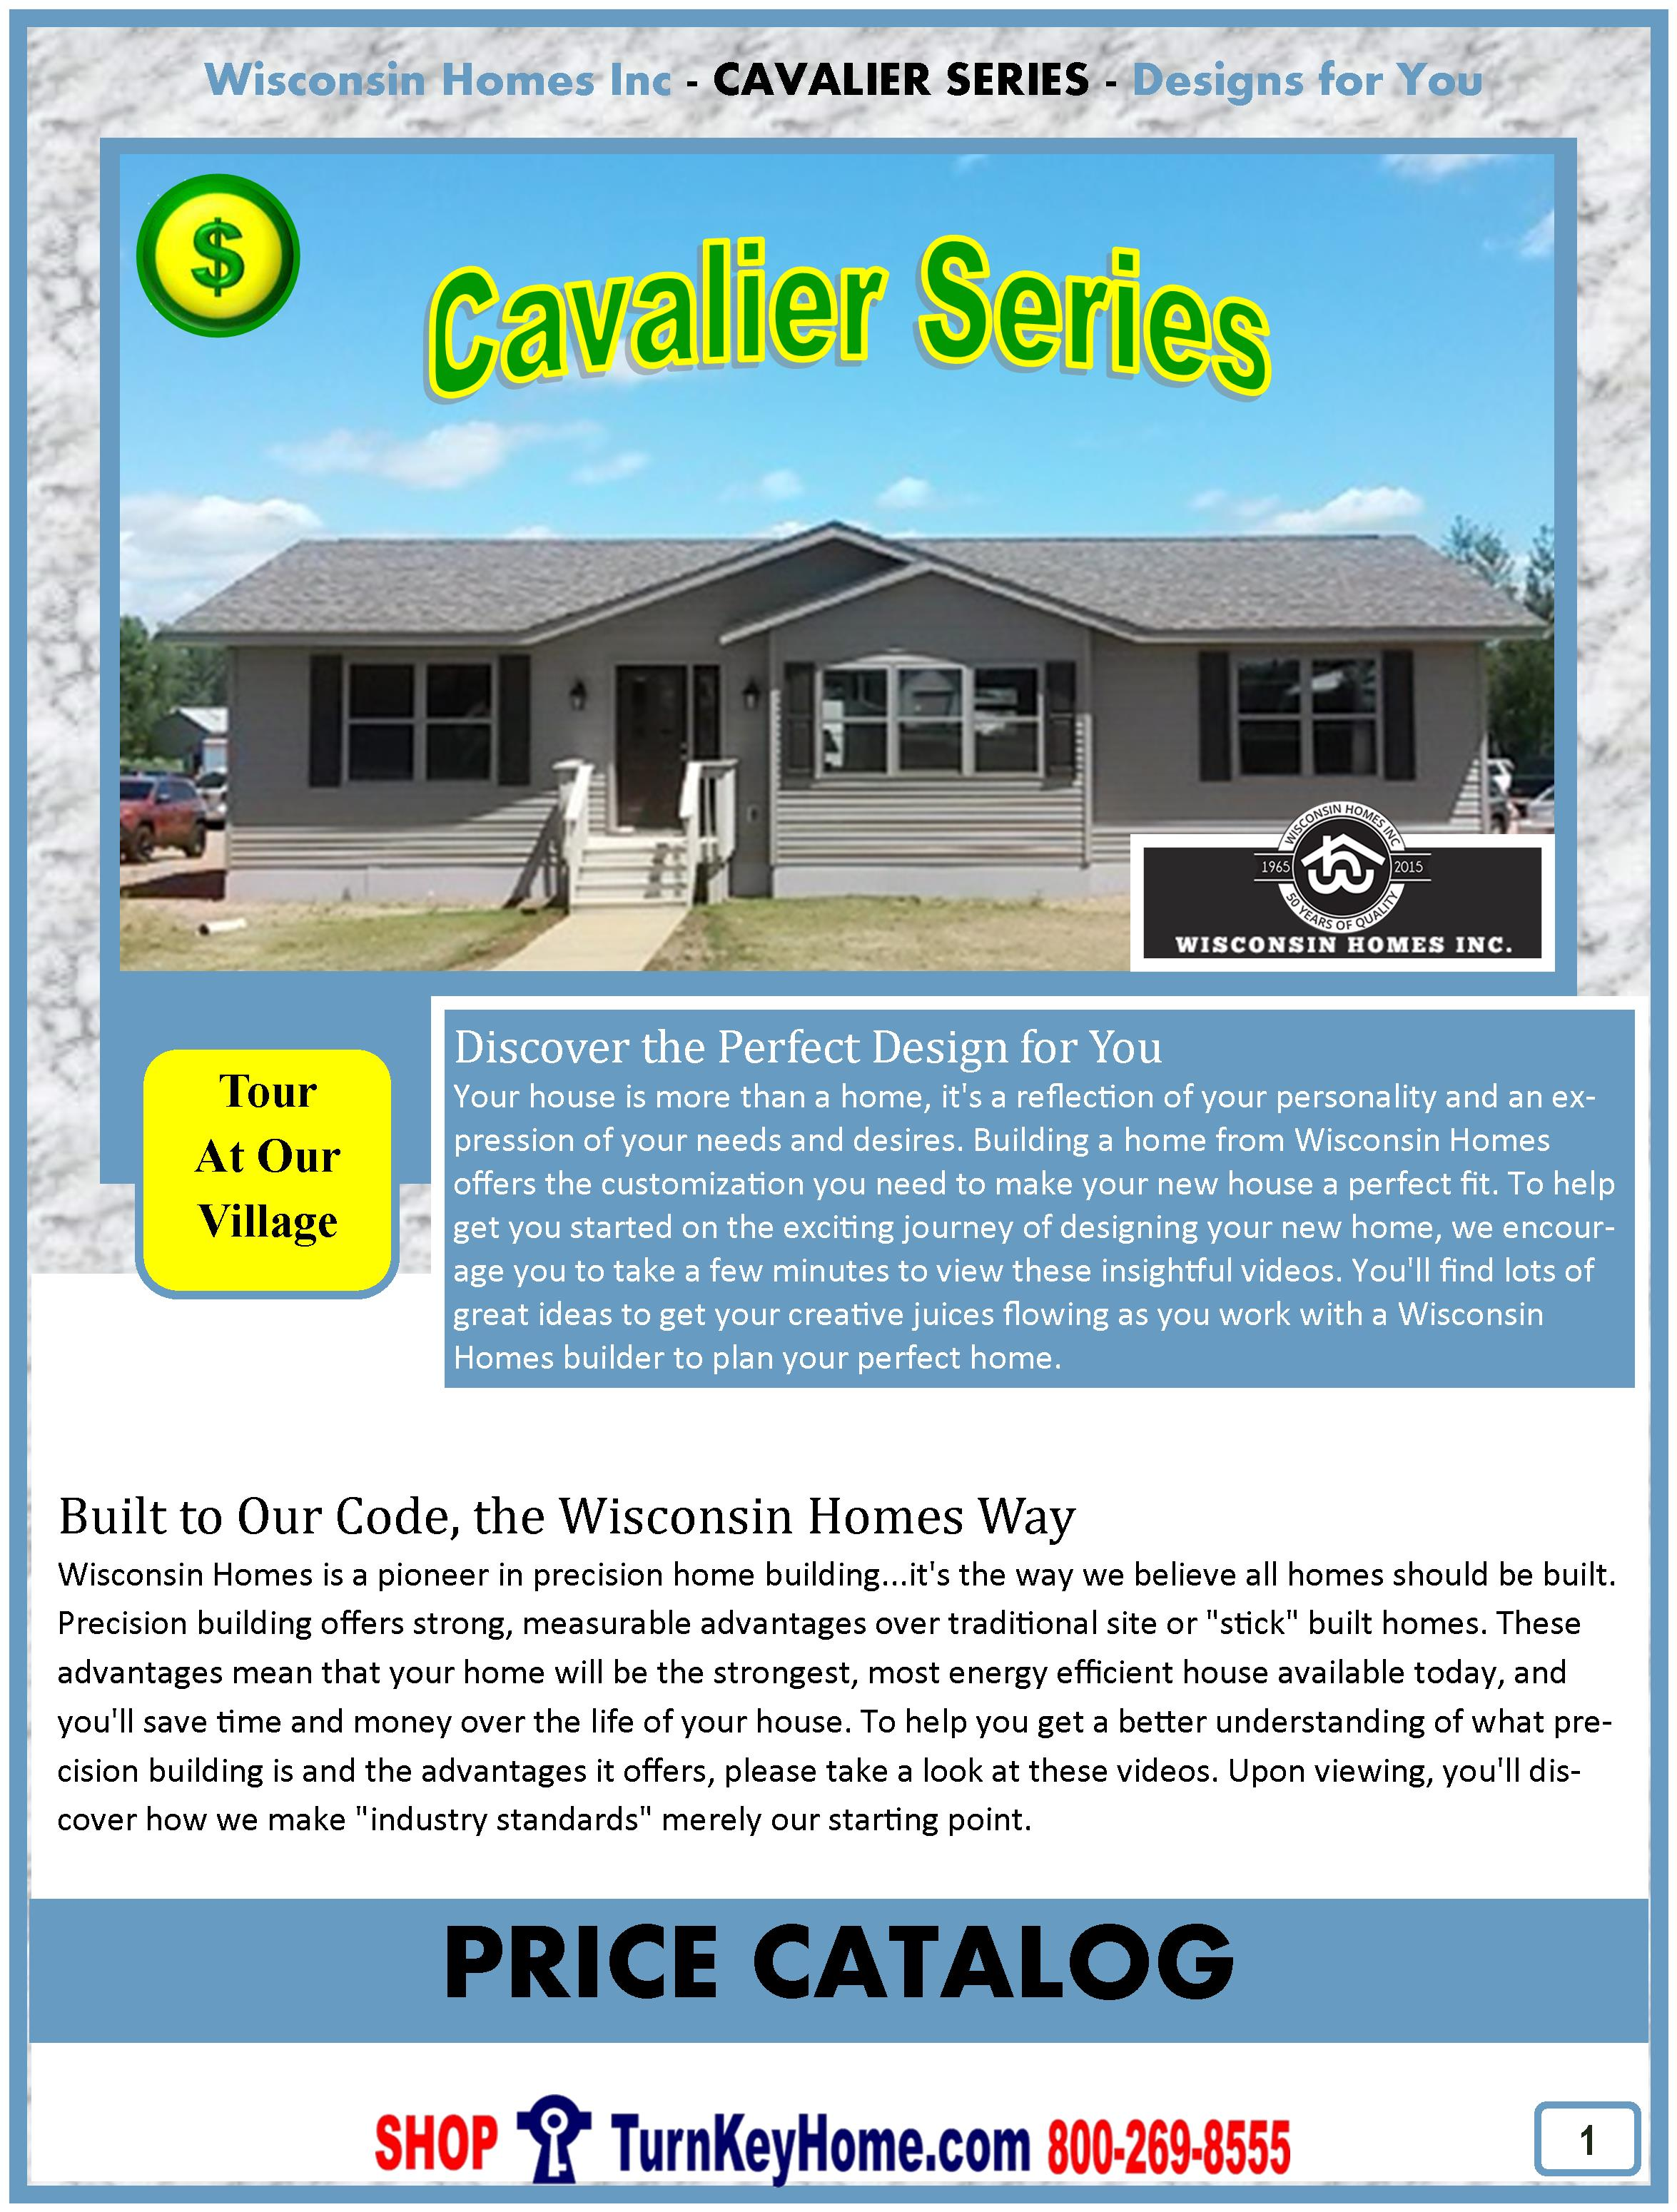 Cavalier Ranch Home Plan and Price Catalog: Wisconsin Homes Inc Modular Homes Marshfield Wisconsin